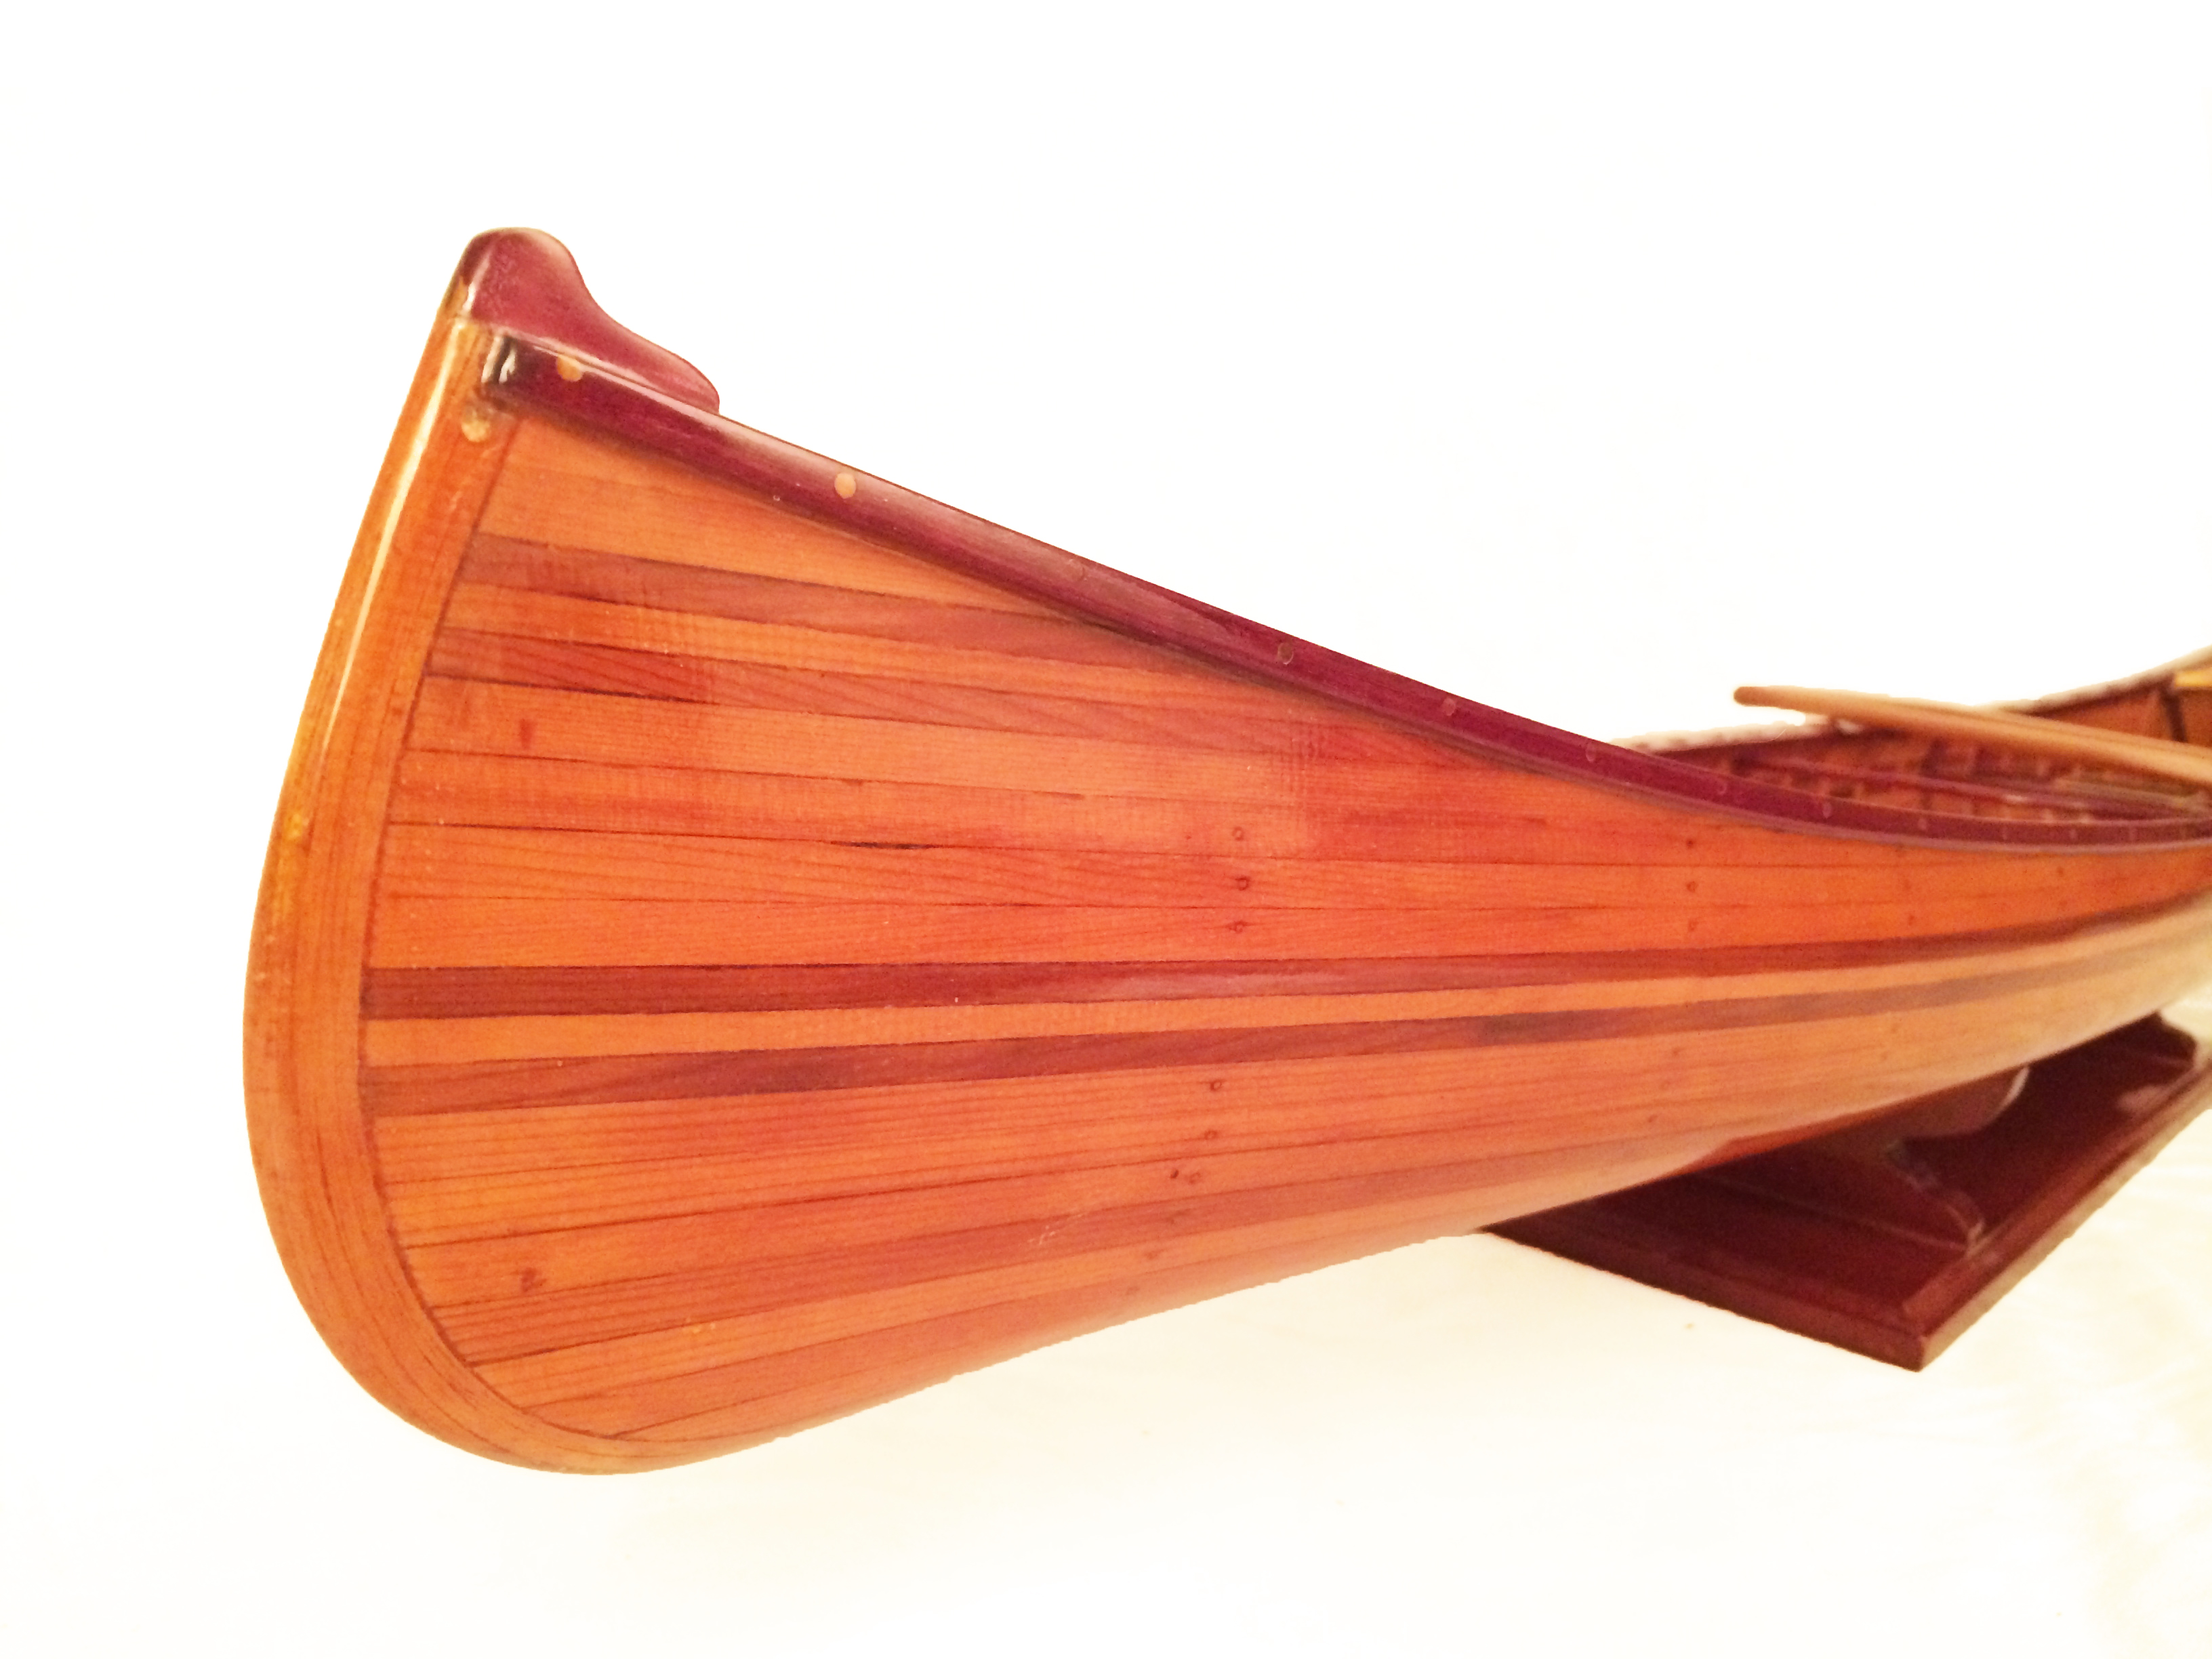 test miniature cedar wood canoe 08